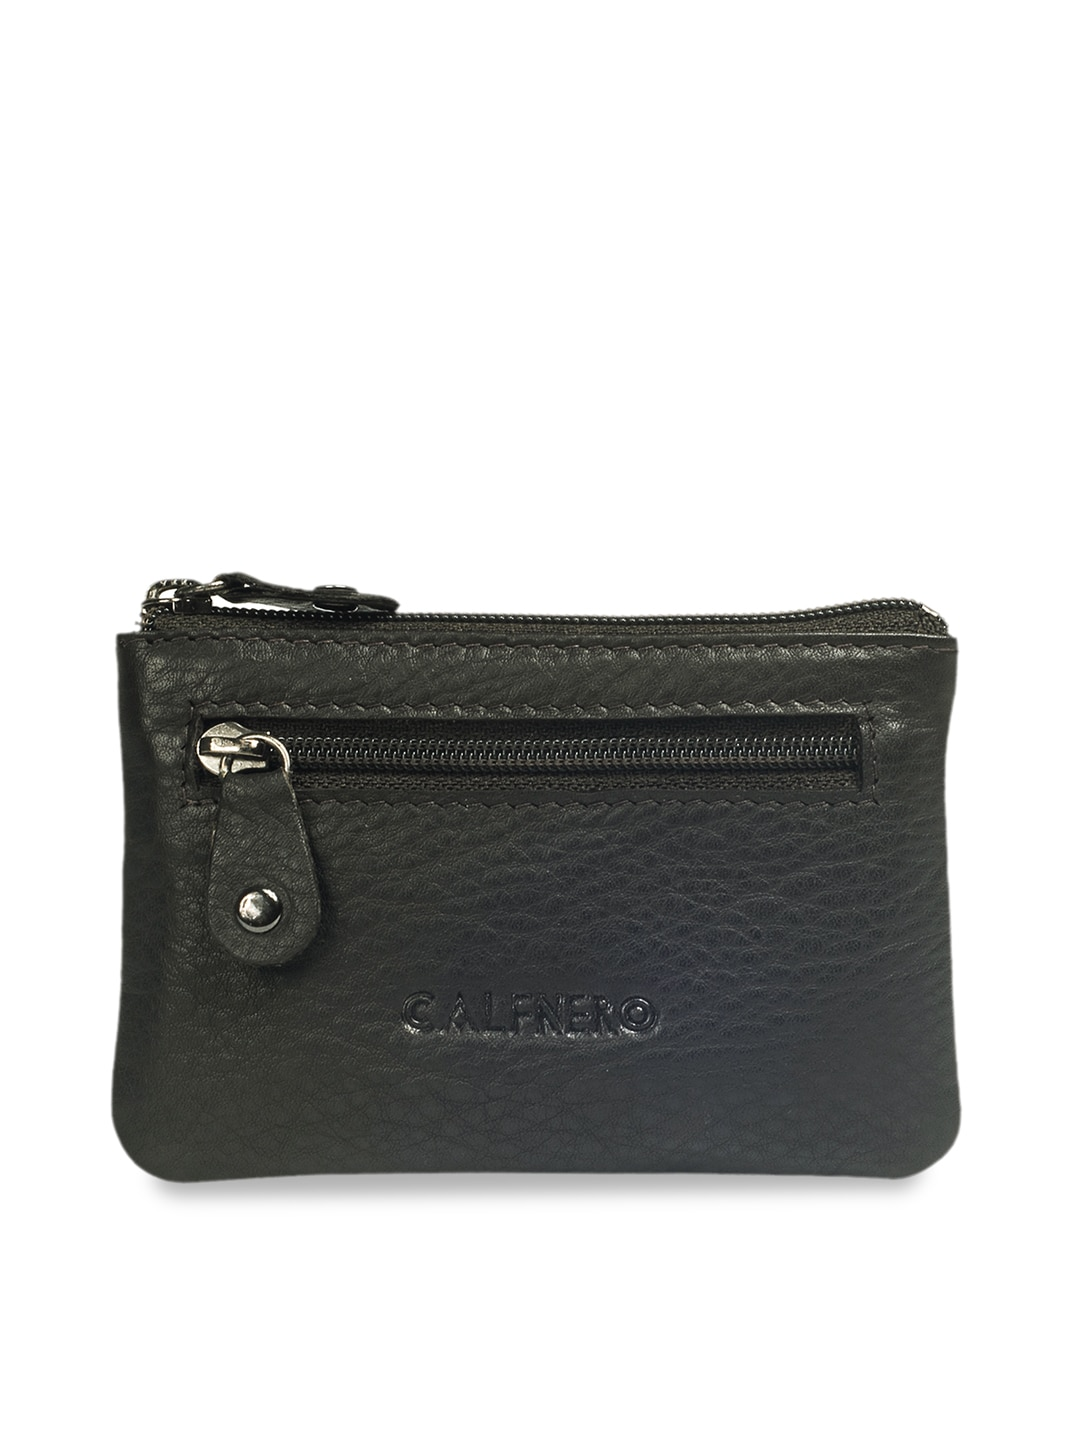 8a4ba69aa9 Women Wallets - Buy Wallets for Women Online in India